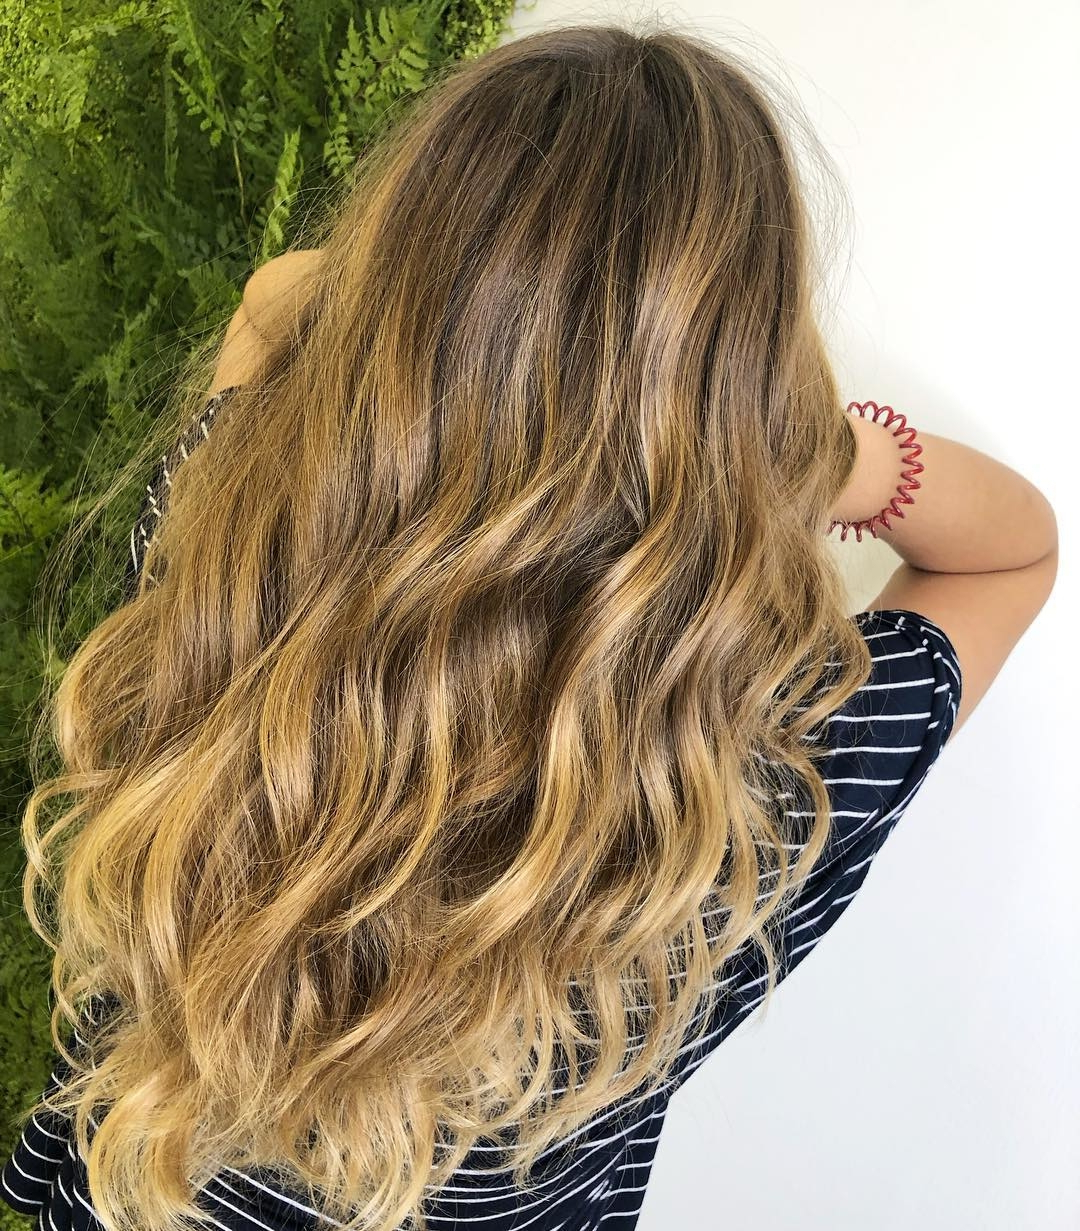 20 Balayage Brown To Blonde Long Hairstyles – Hair Colour In Latest Blonde Balayage On Long Voluminous Hairstyles (View 5 of 20)